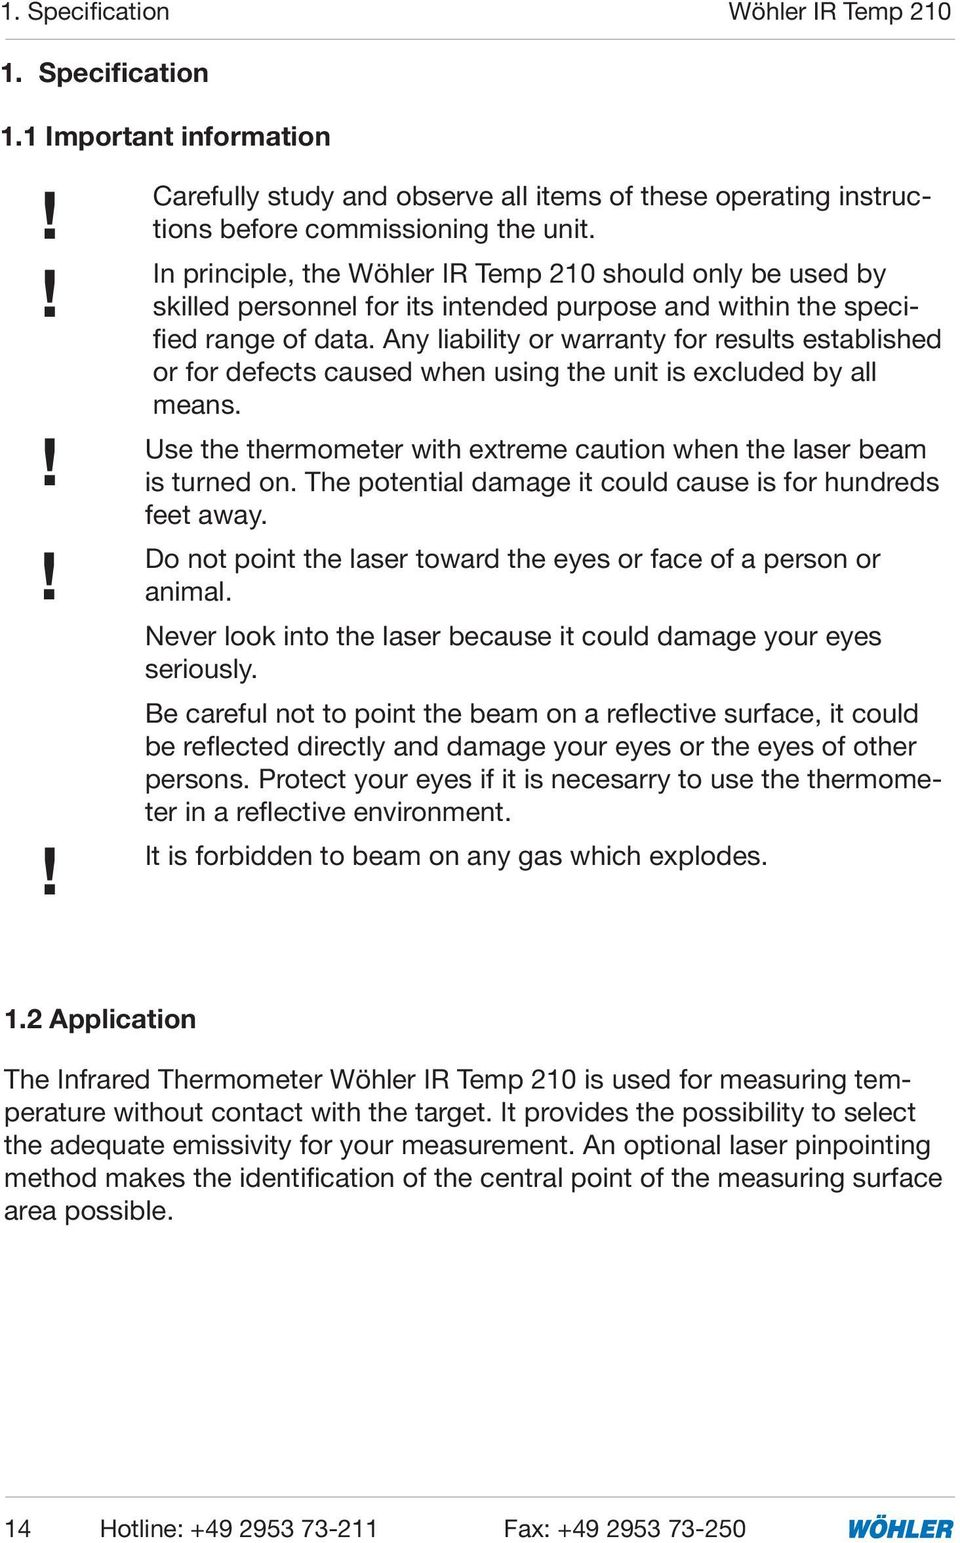 Any liability or warranty for results established or for defects caused when using the unit is excluded by all means. Use the thermometer with extreme caution when the laser beam is turned on.